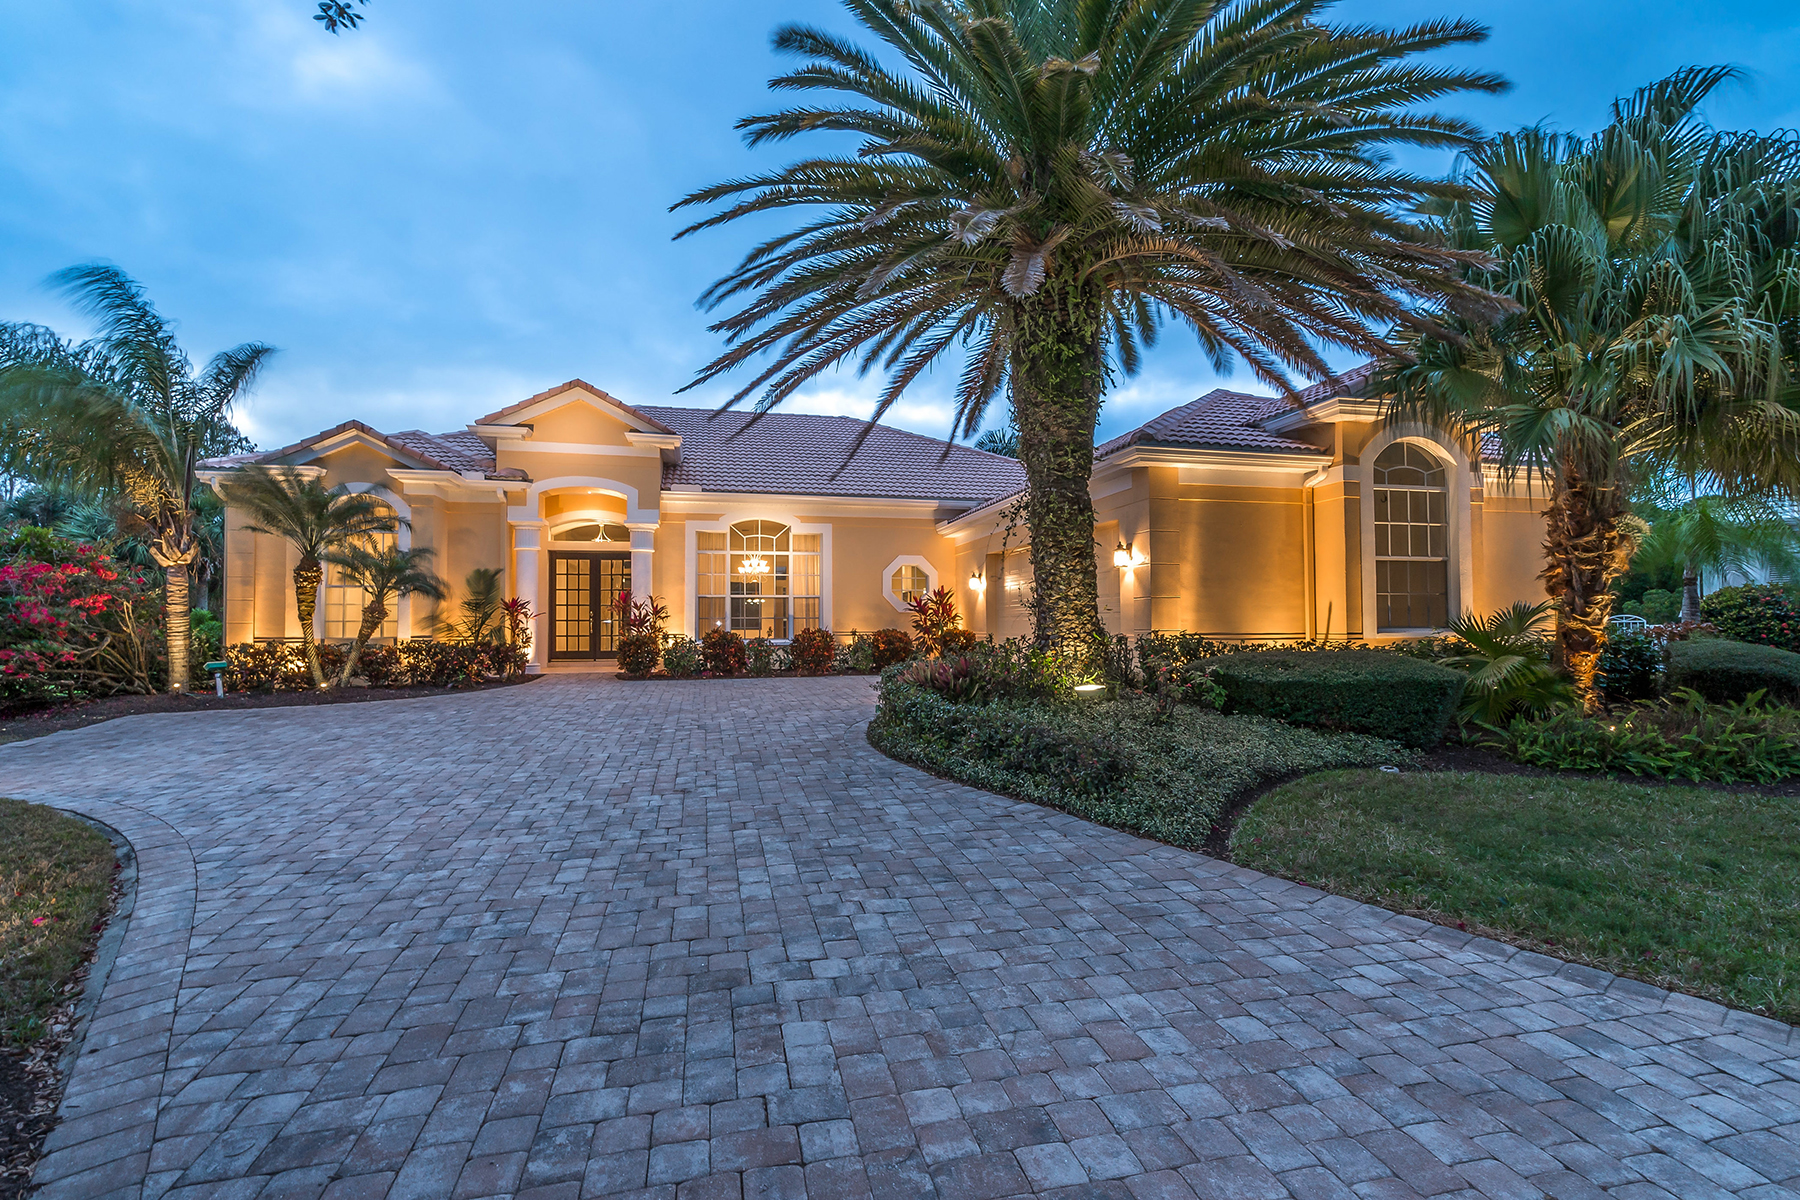 Single Family Home for Sale at BOCA ROYALE 18 Saint Croix Way Englewood, Florida 34223 United States